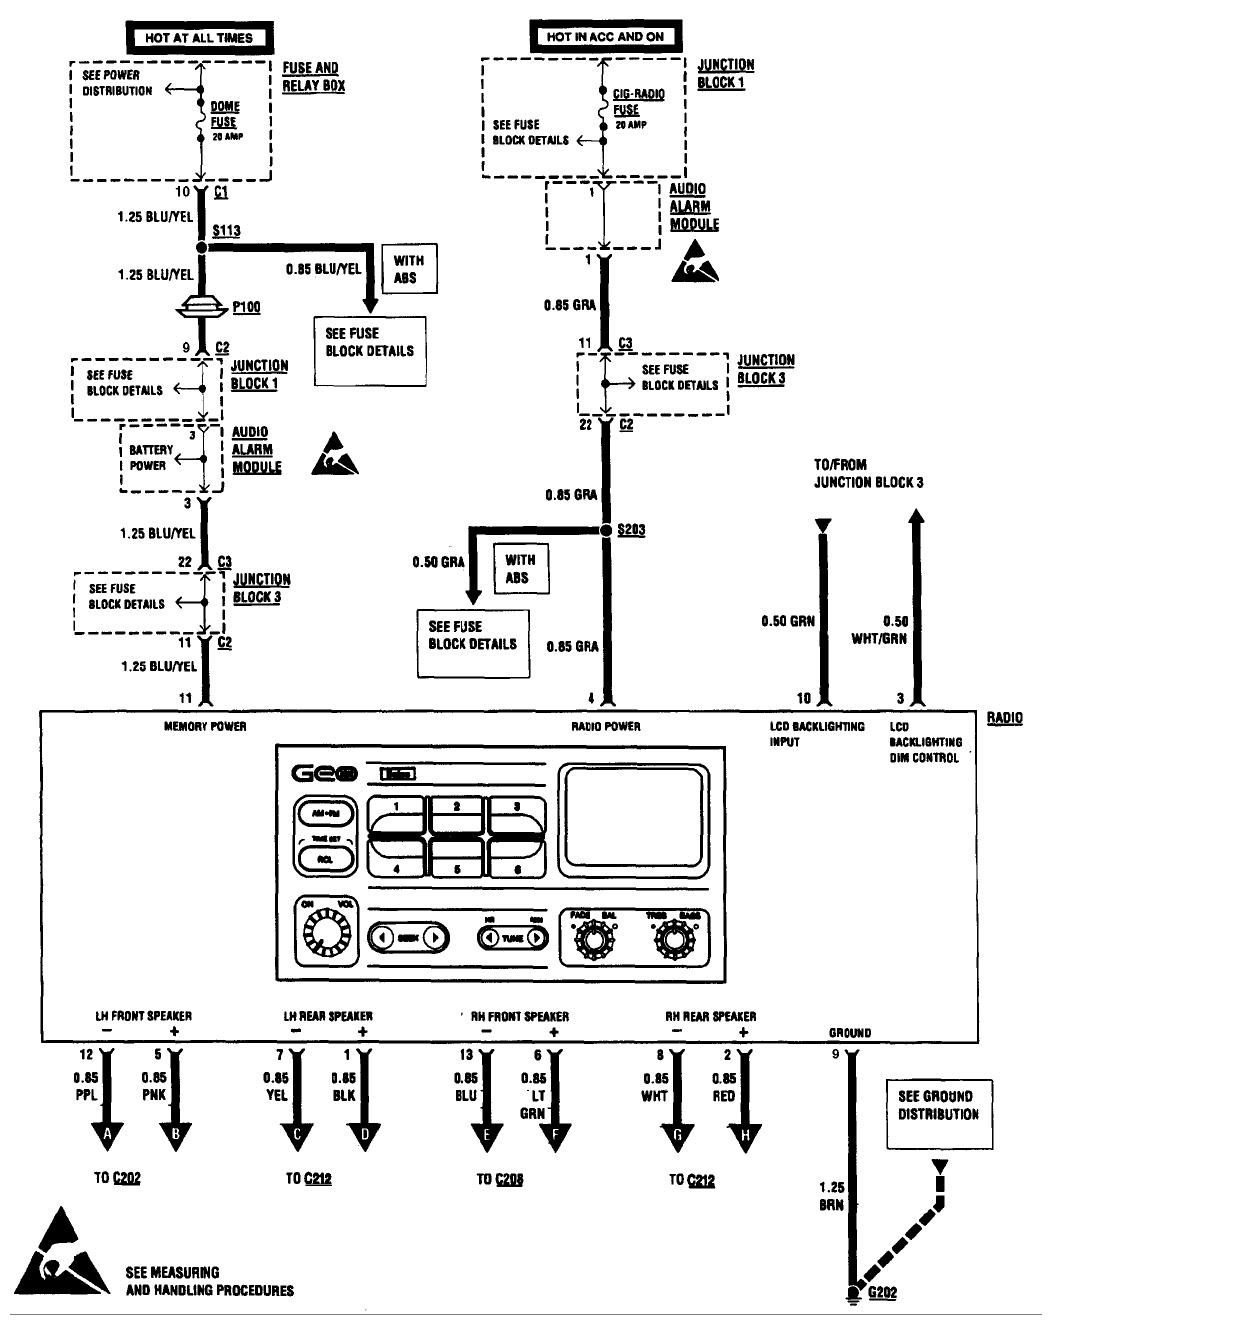 what is the wiring color code for a radio in a 1996 geo metro